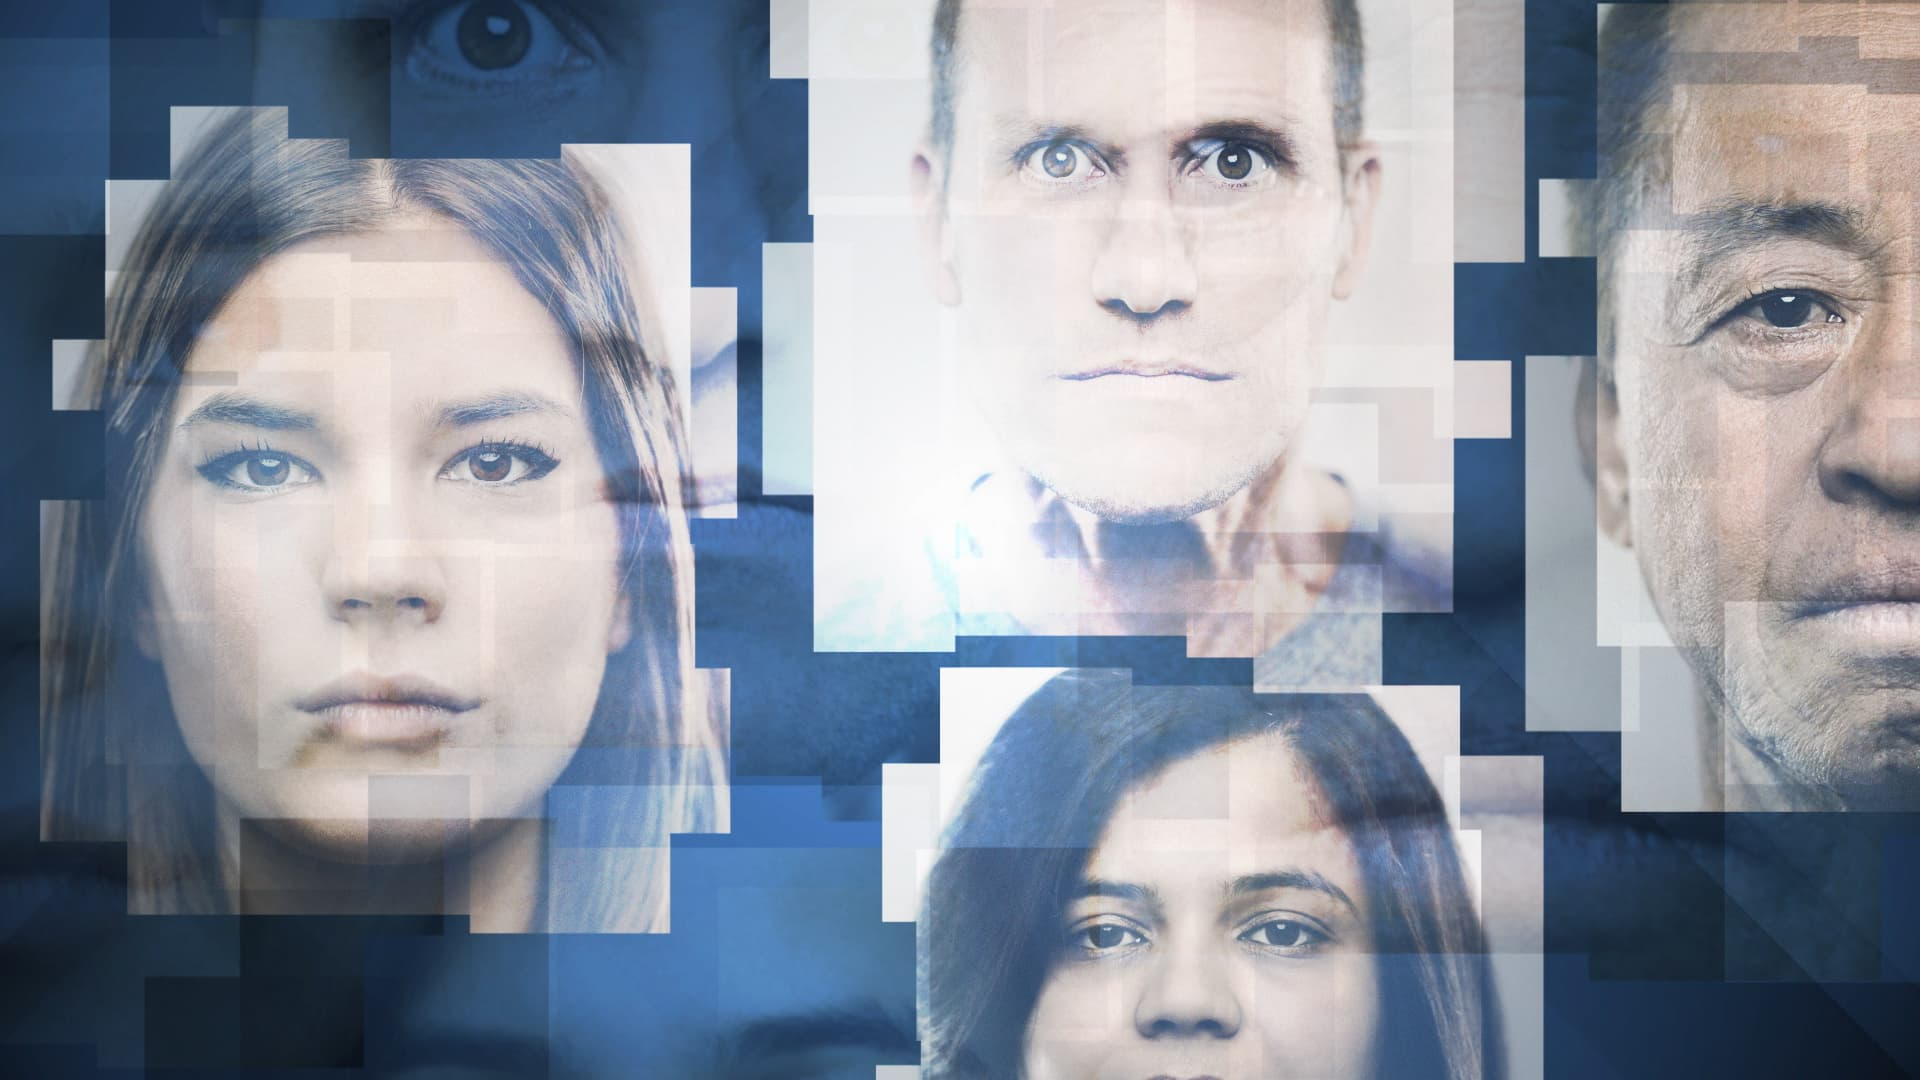 Why police usage of facial recognition has come under scrutiny 2